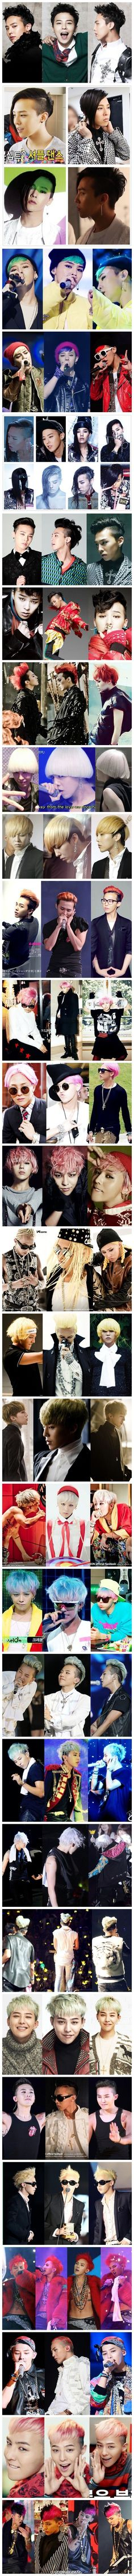 25 Ideas for hair color asian men g dragon – self-developing-cus Daesung, Block B, Vixx, G Dragon Hairstyle, Men's Hairstyle, K Pop, Lee Hi, Mundo Musical, Sung Lee